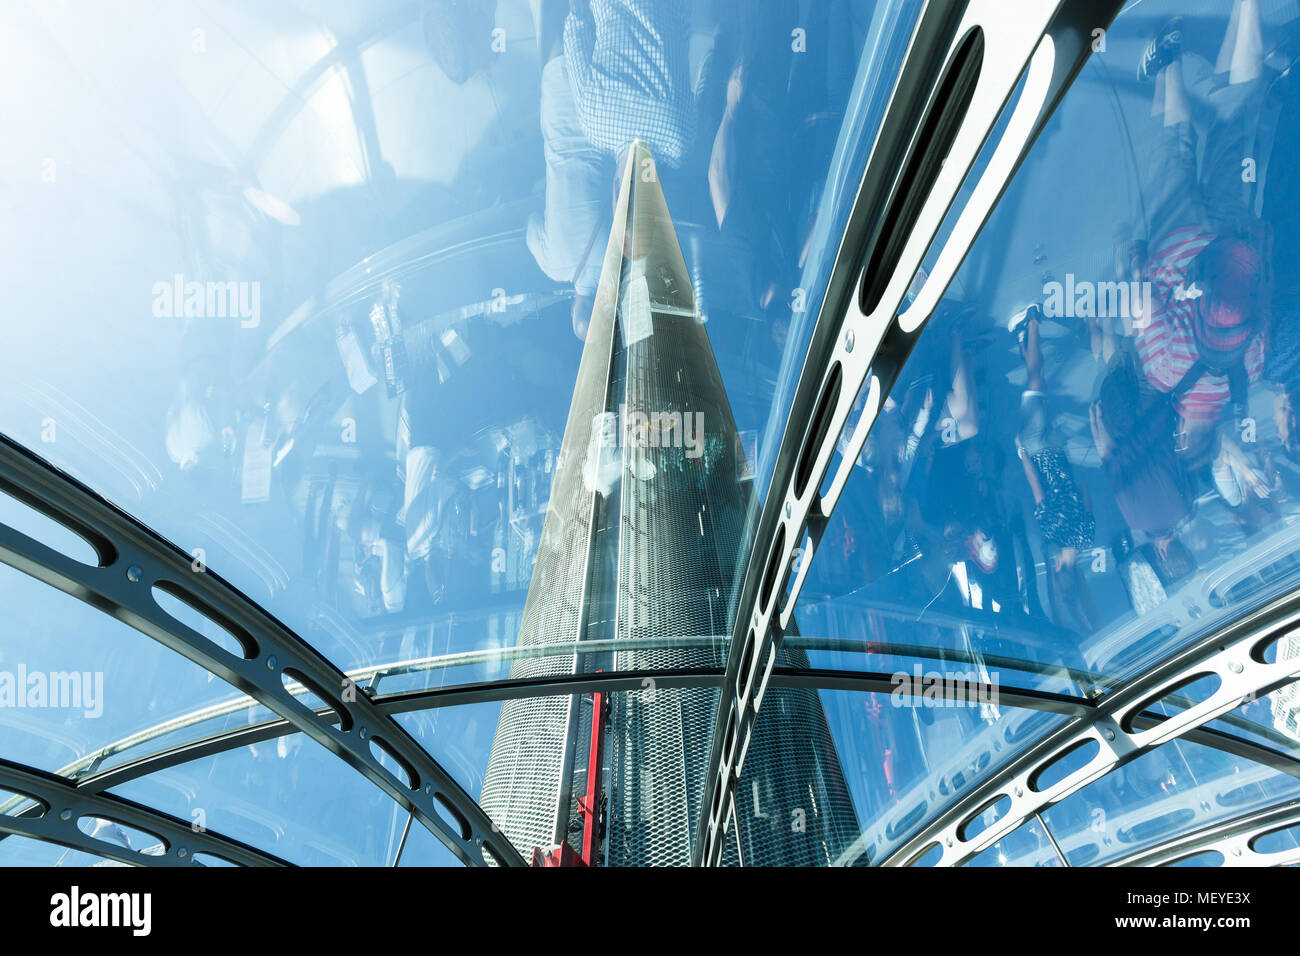 Spire of British Airways i360 observation tower in Brighton, reflections - Stock Image